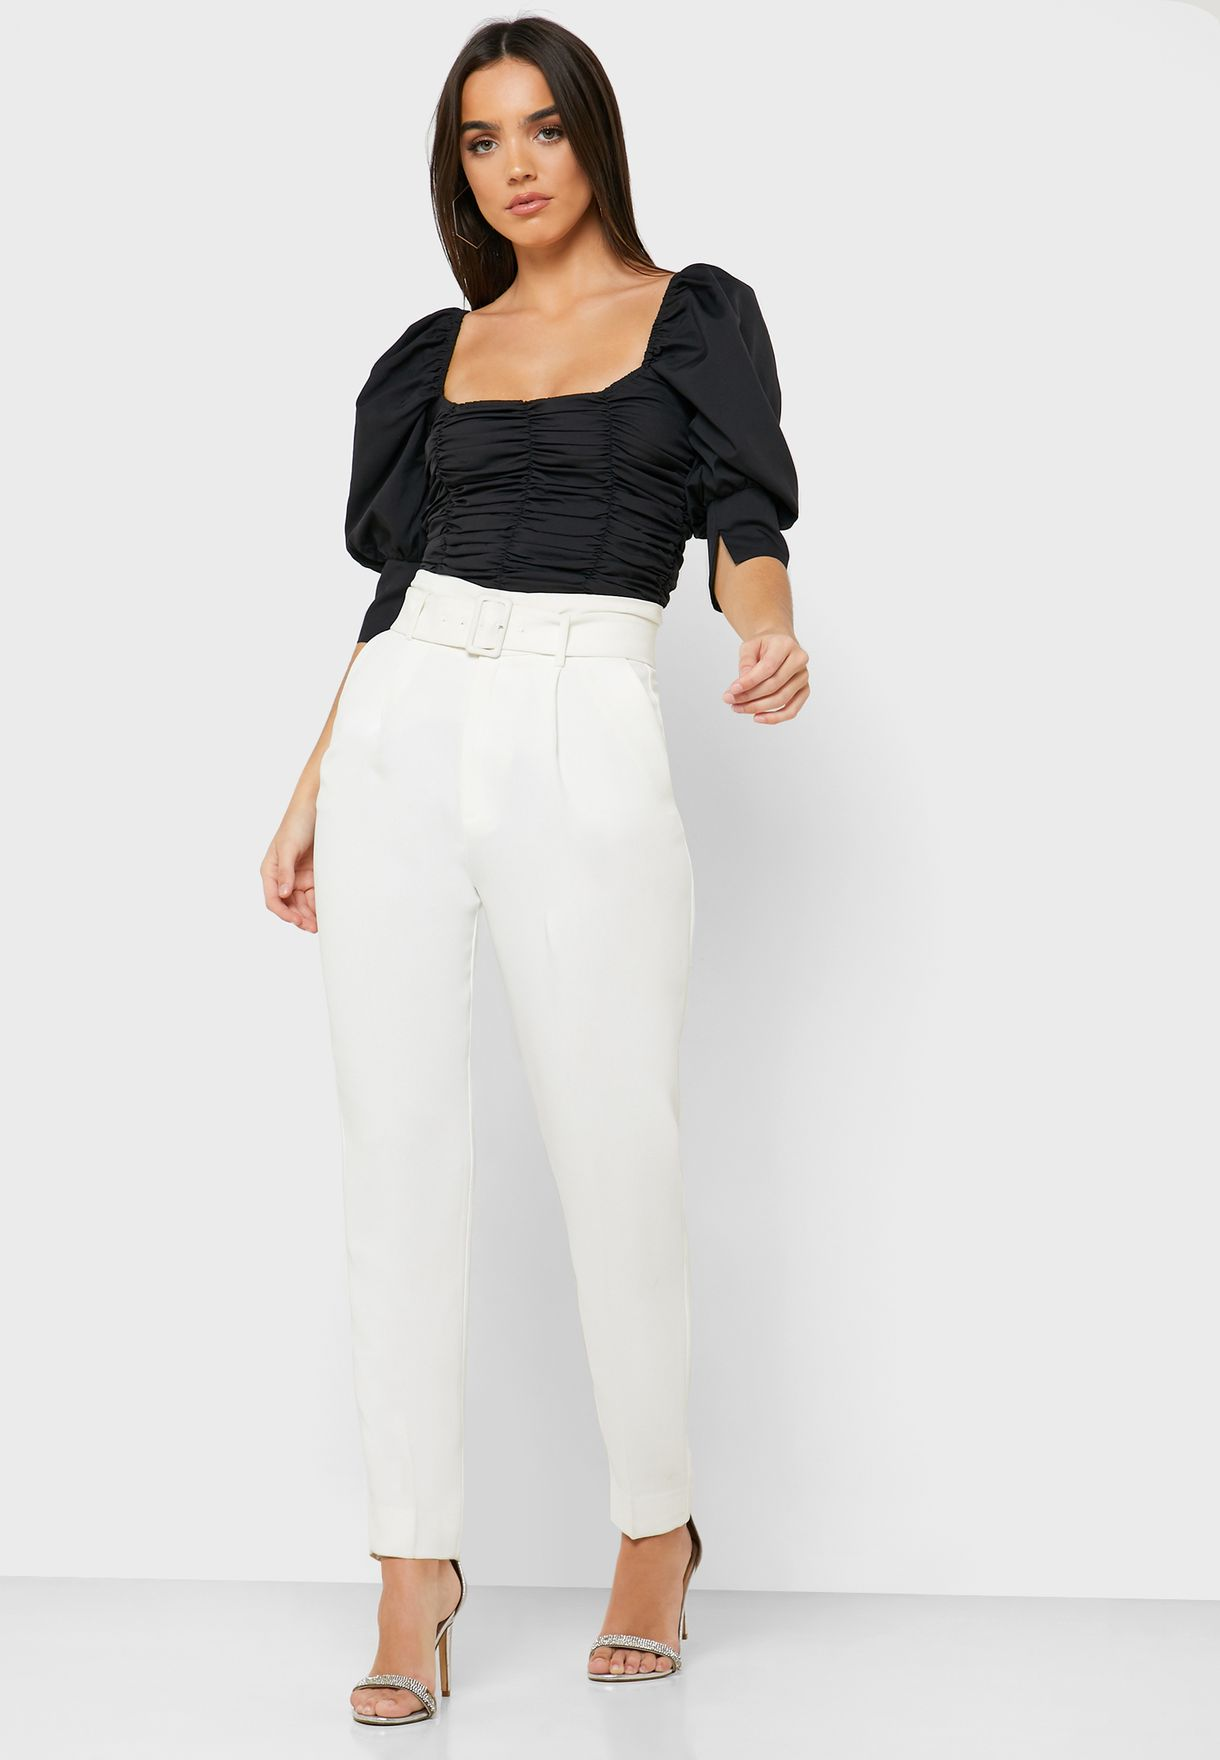 Ruched Detail Crop Top